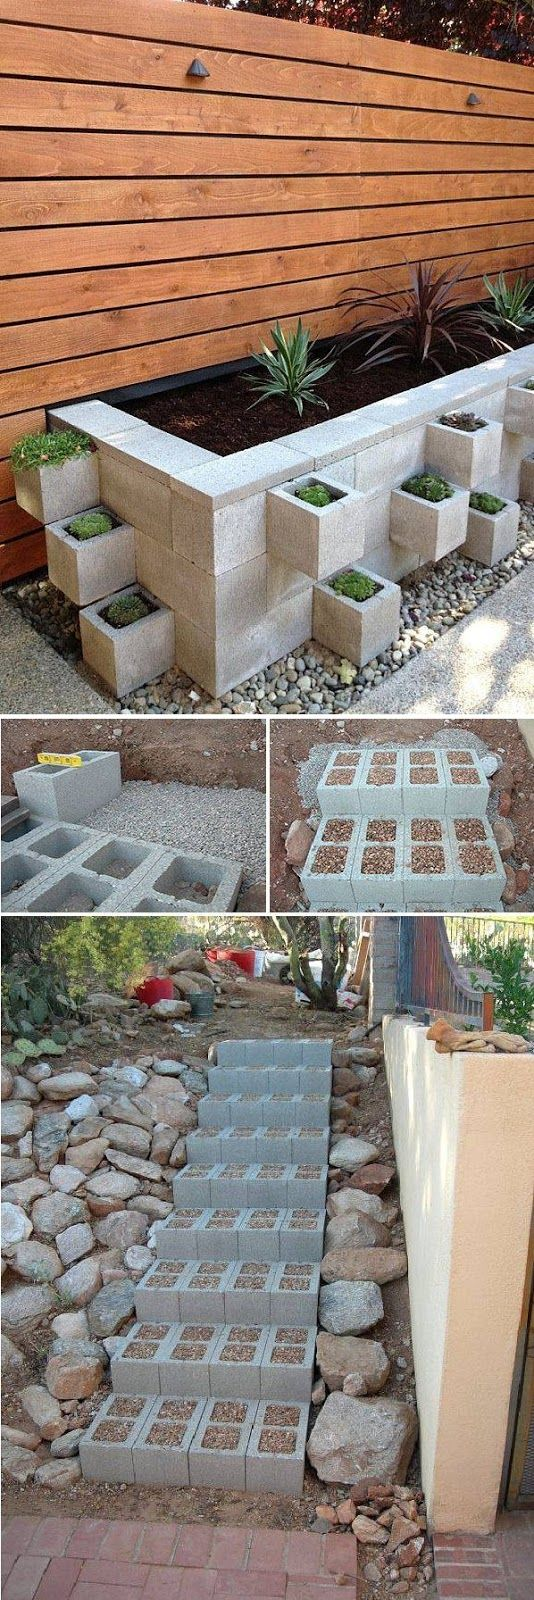 Outdoor Steps Steps Build Outdoor Steps With Cinder Blocks Then Fill In The